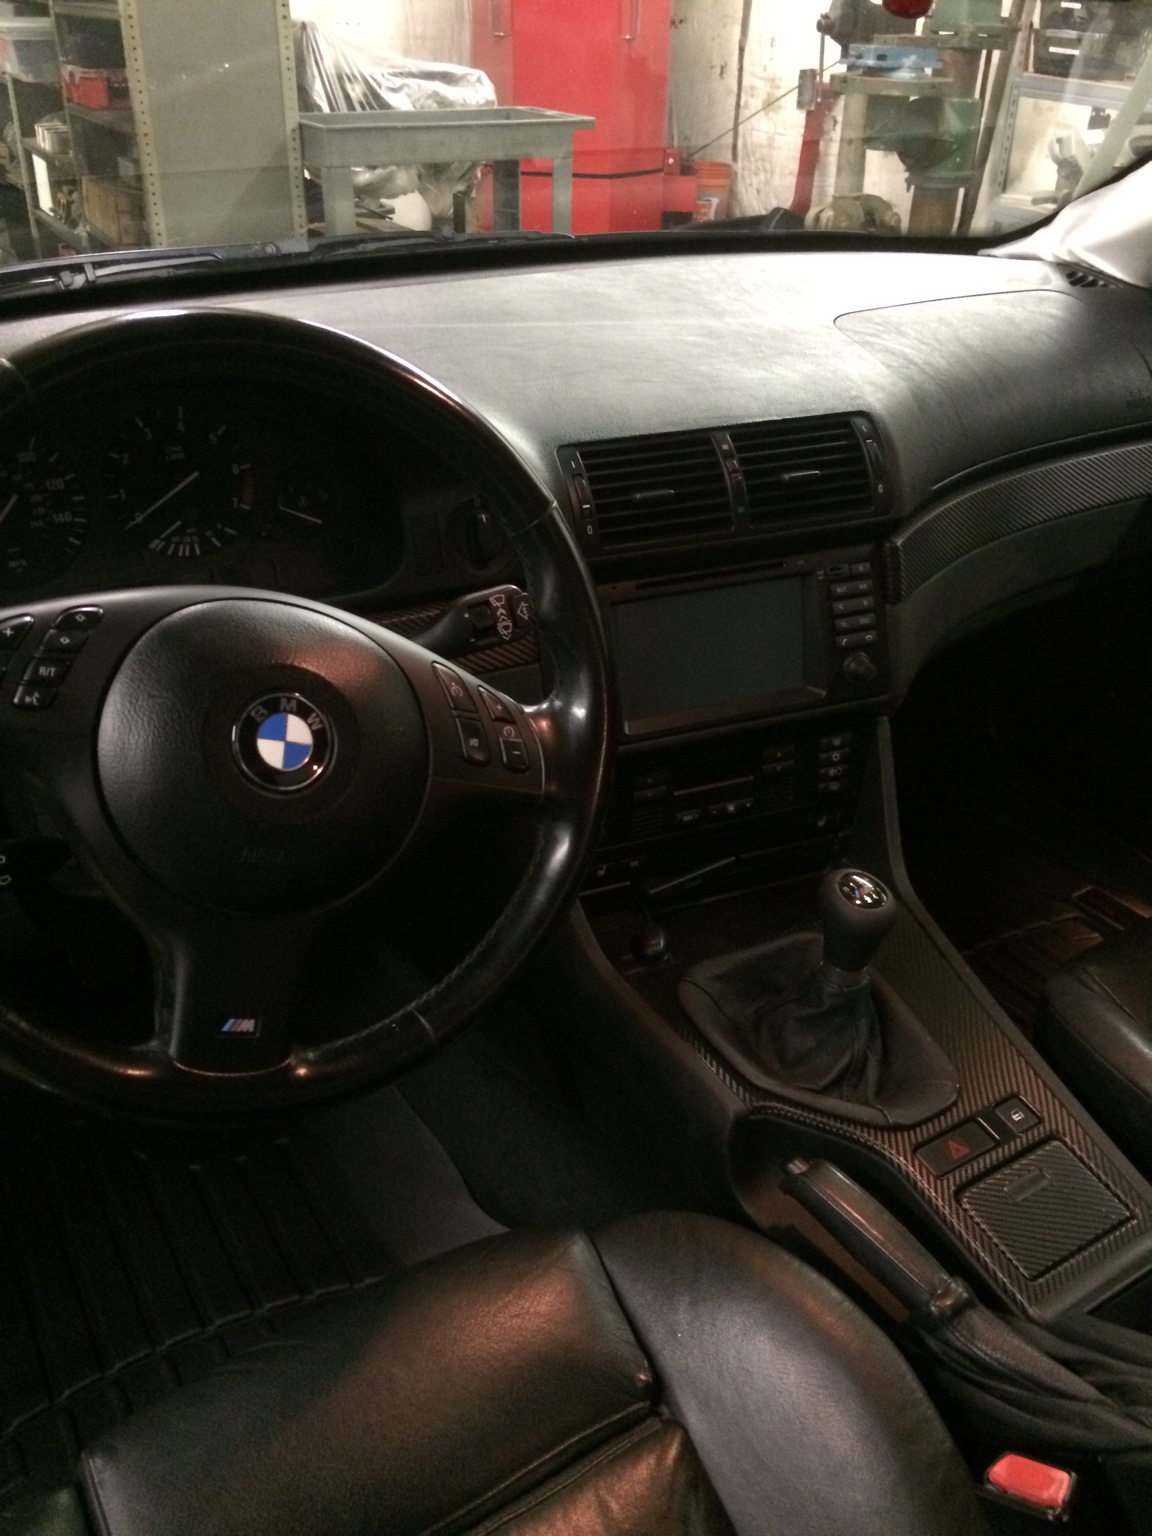 E60E61 2003 BMW 525i M sport 5 speed